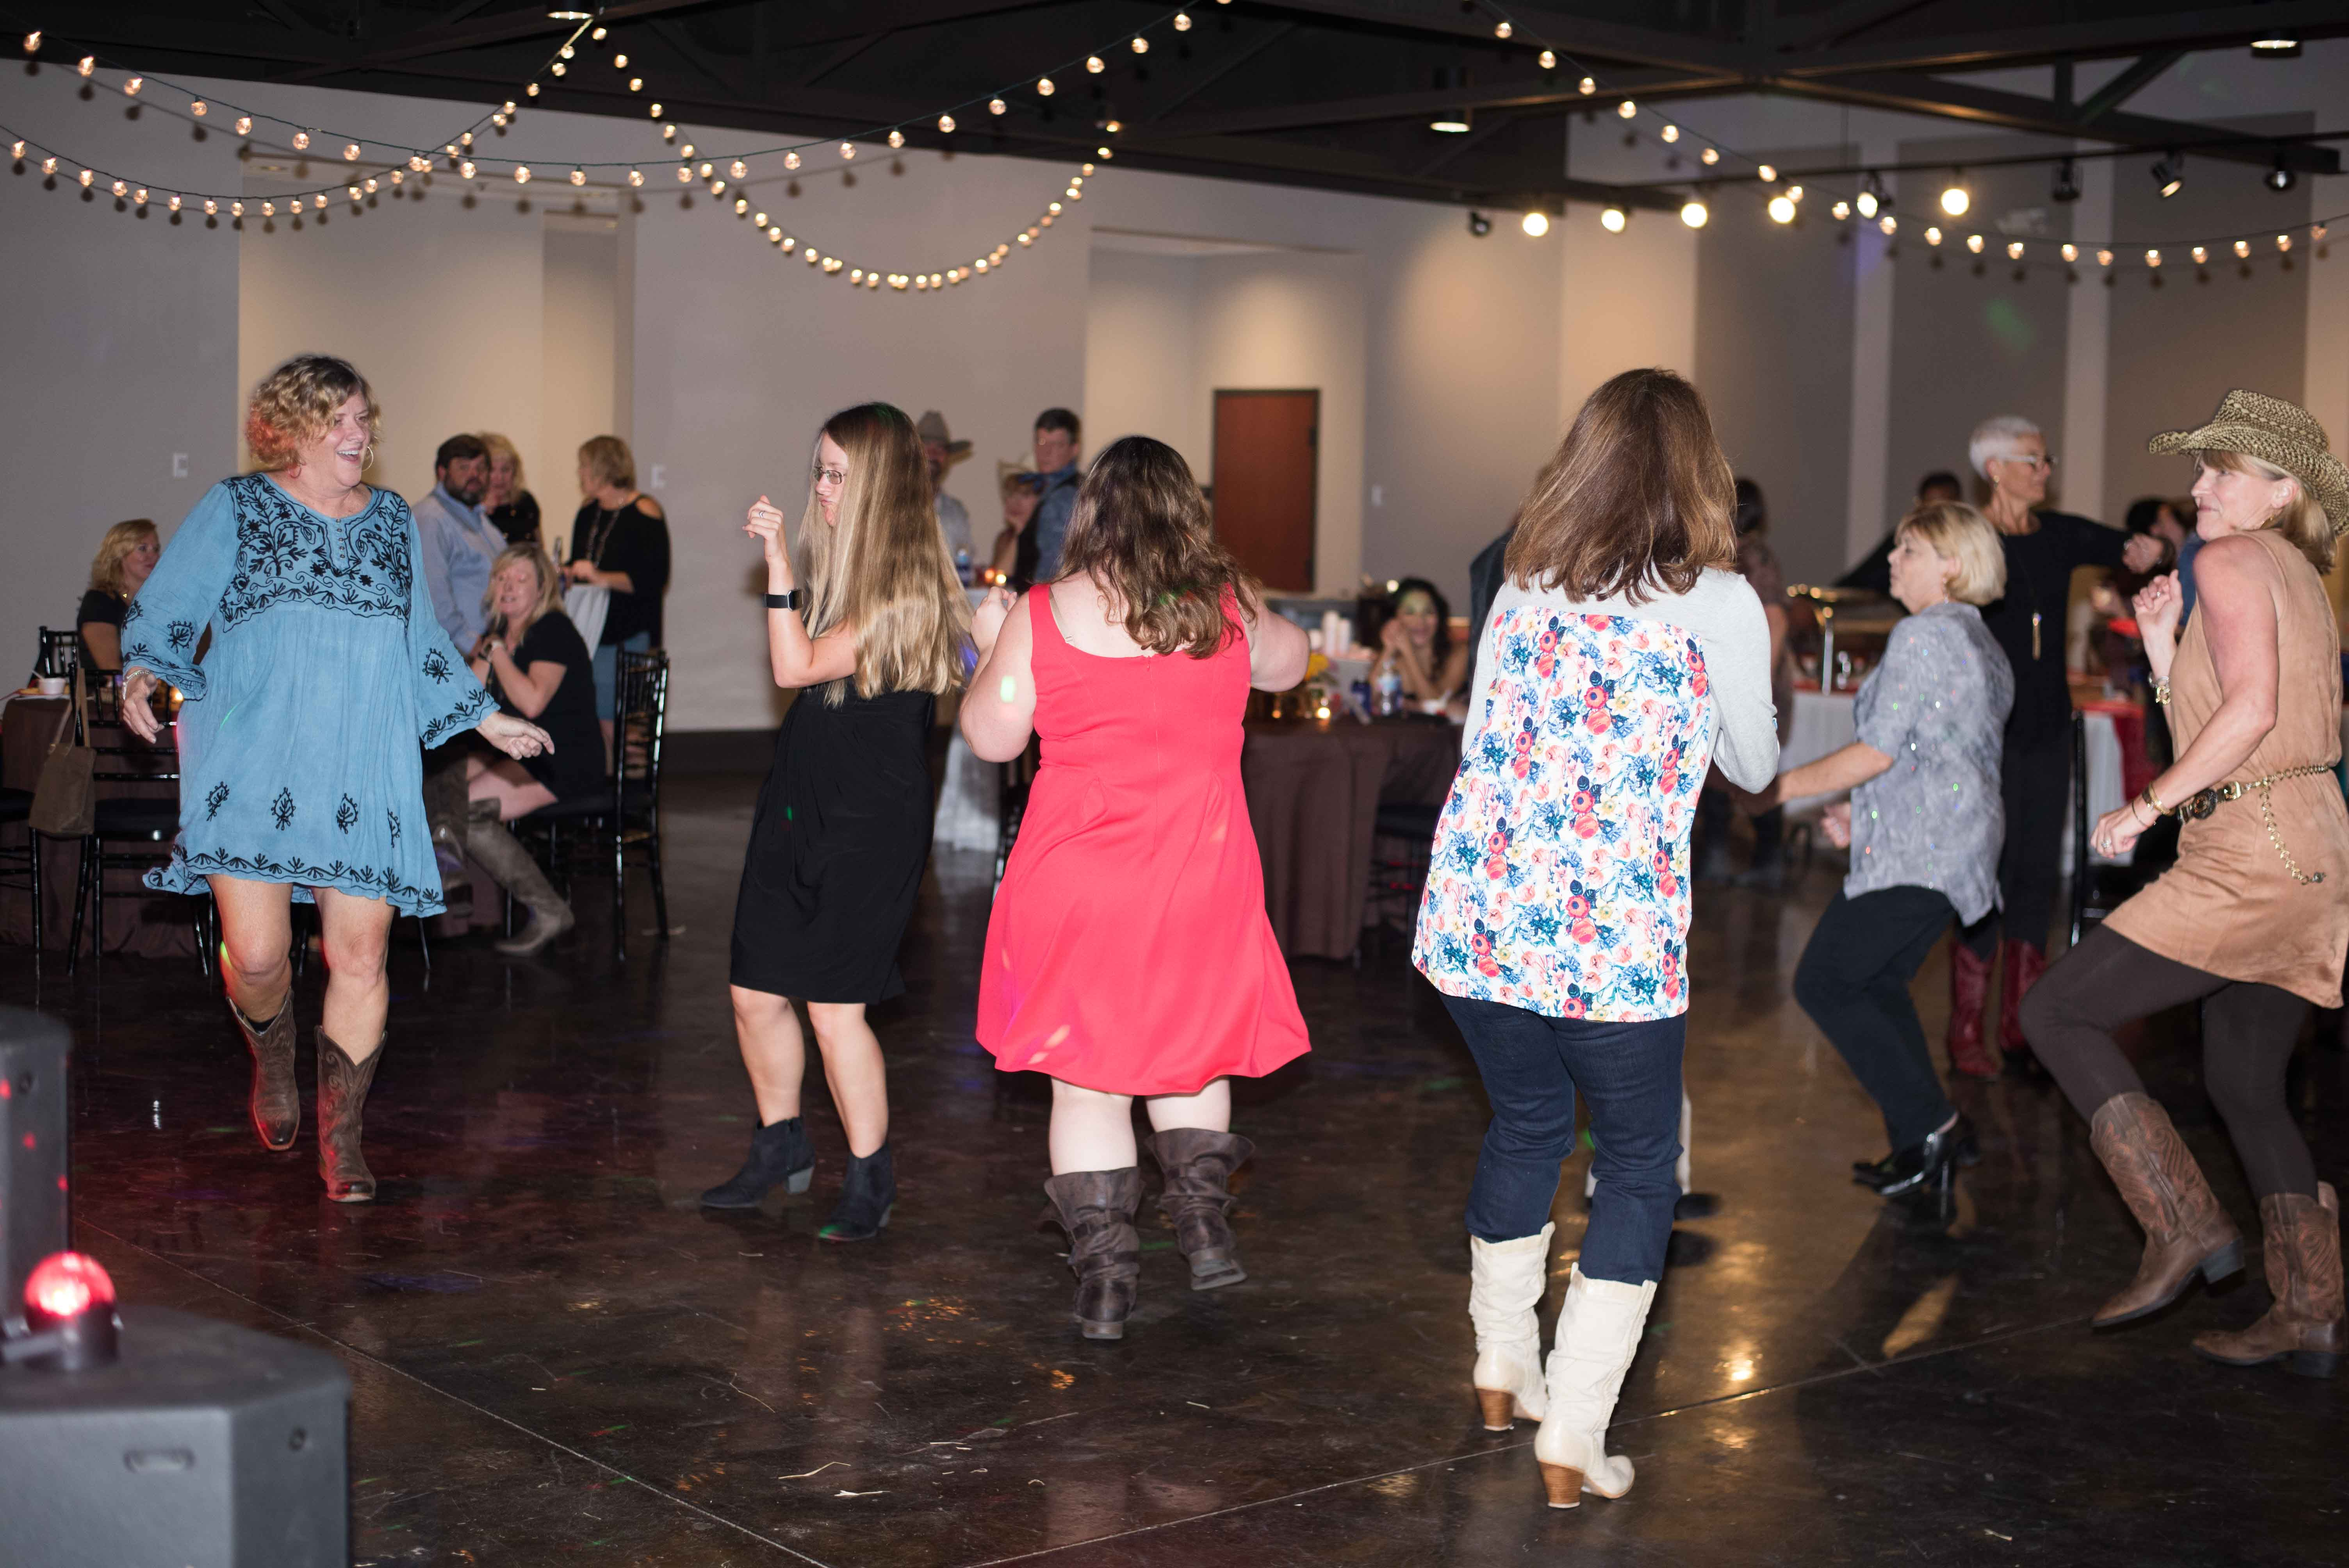 YMCA puts on fun night of boots, bling and dancing